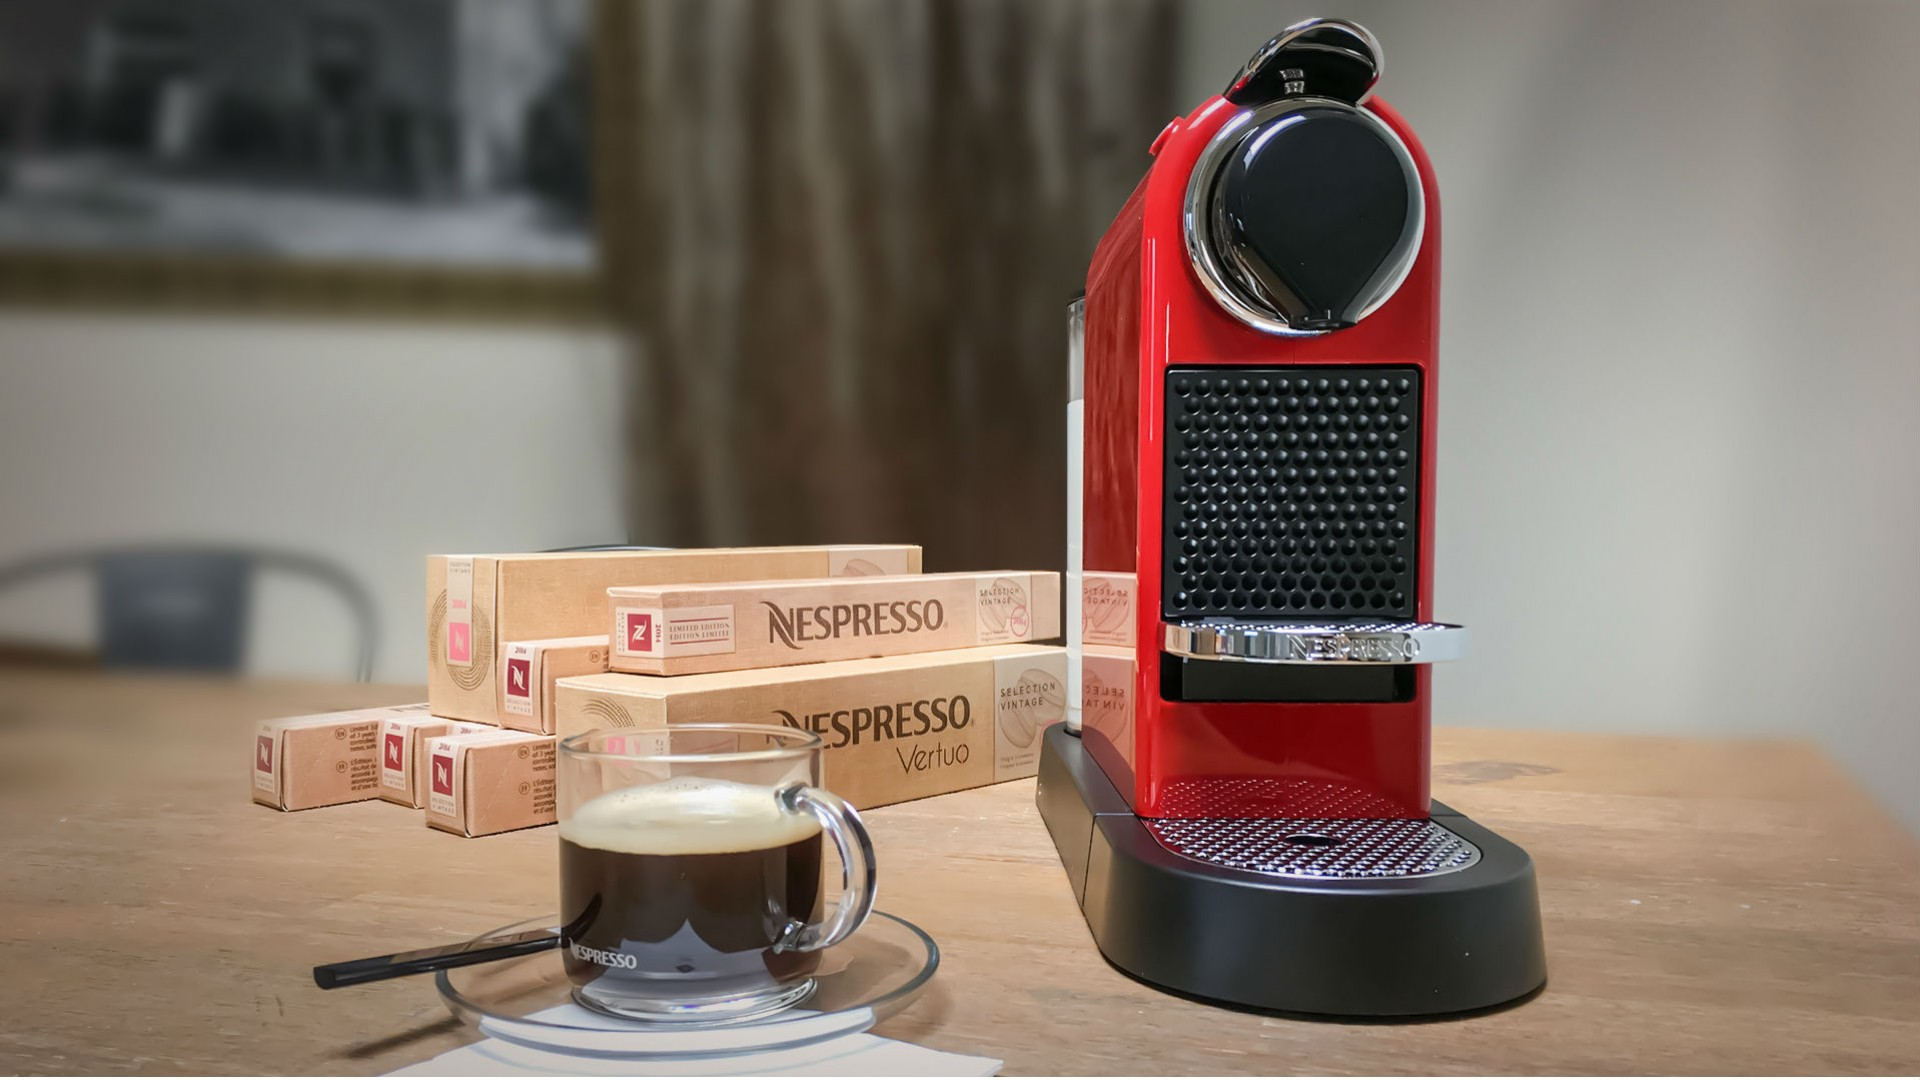 fans of capsule espresso machines will find a lot to love about the nespresso citiz with its simple controls and speedy heat up time 25 seconds